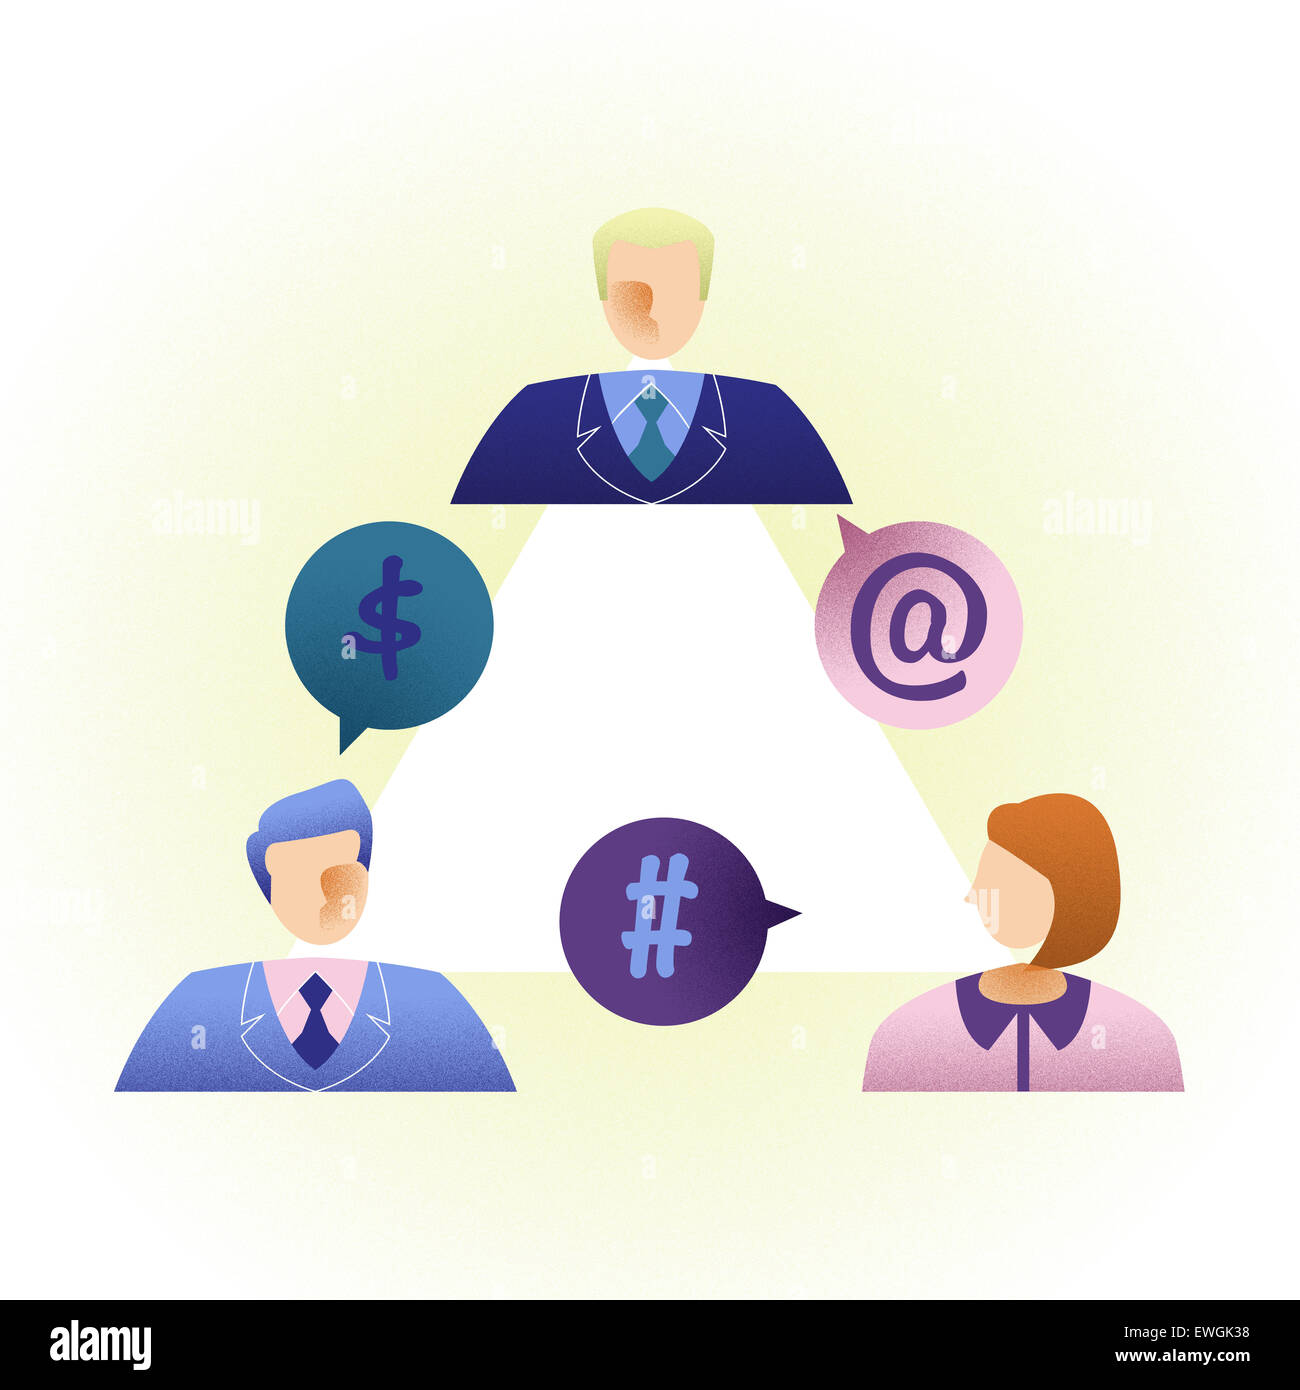 Business people communicating online - Stock Image